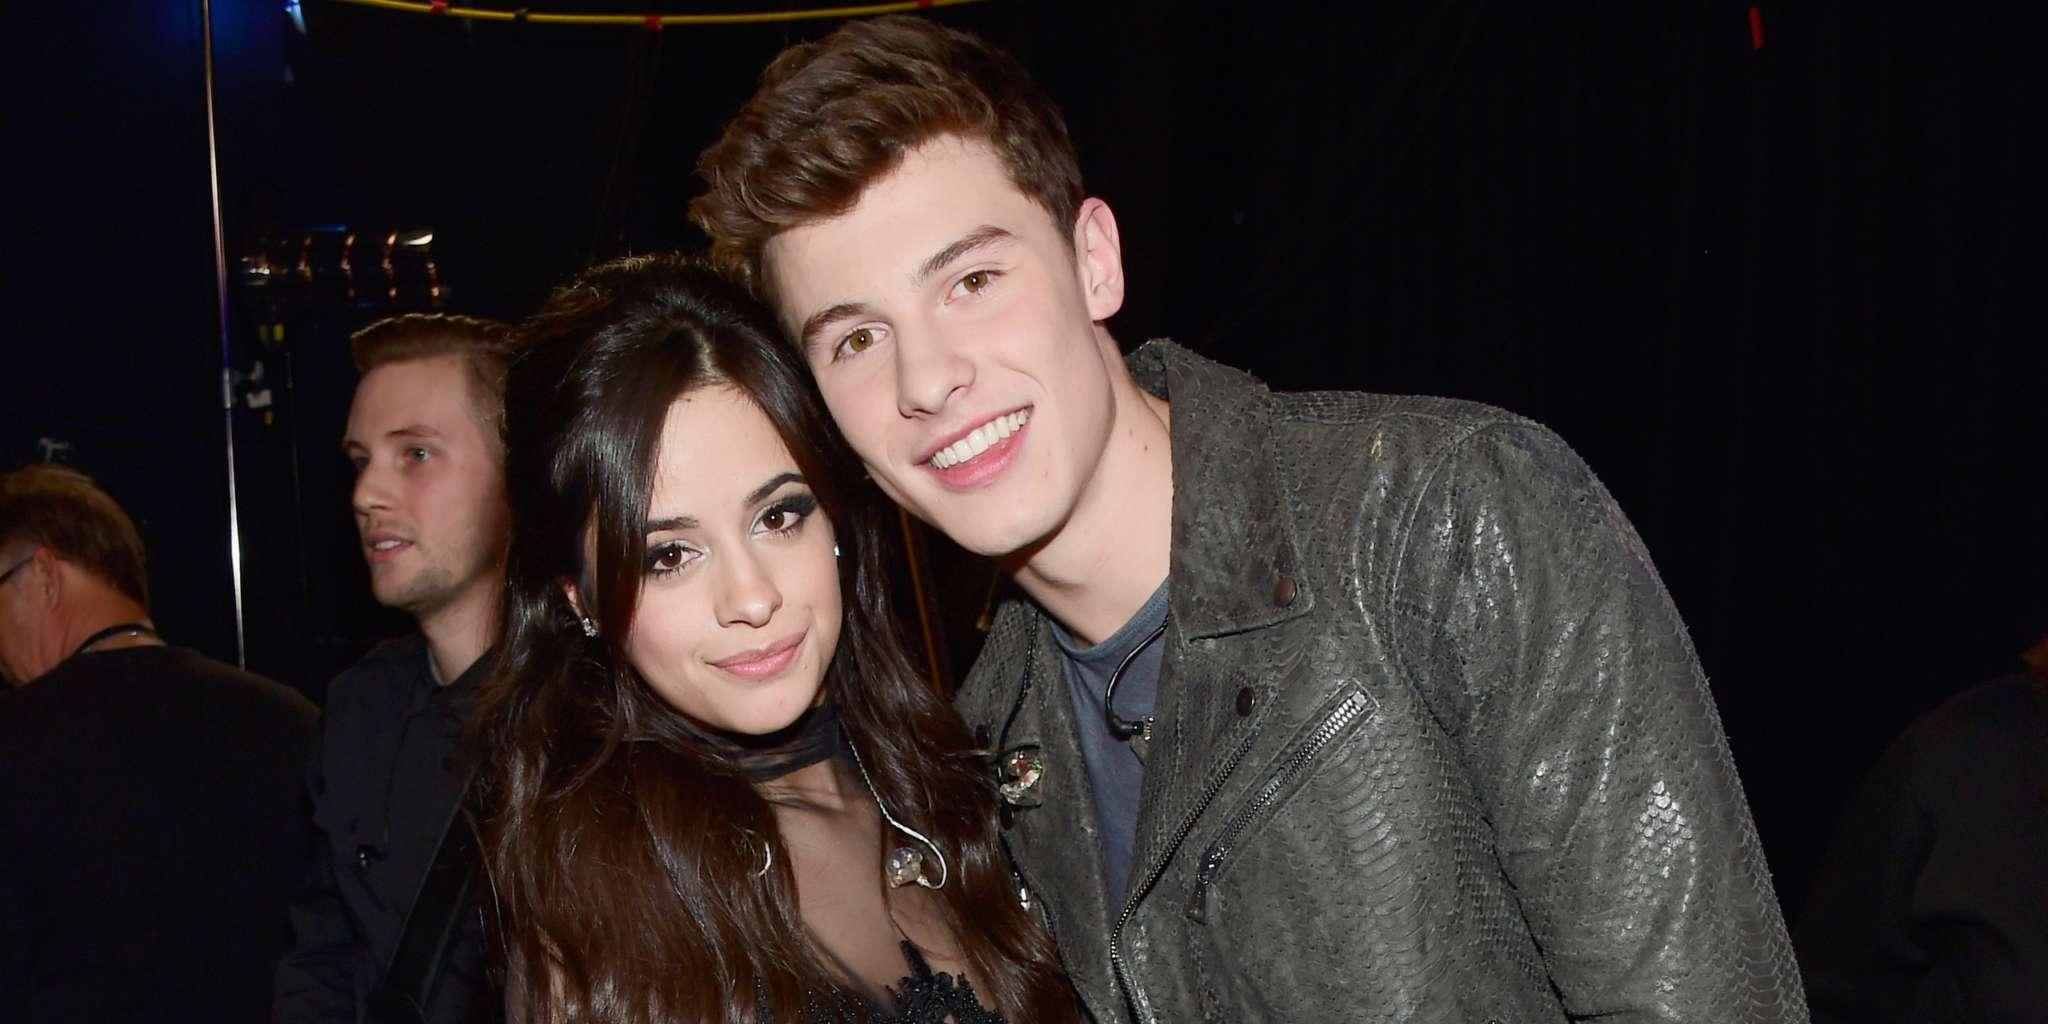 Shawn Mendes Claims All His Songs Are About Girlfriend Camila Cabello In New Netflix Documentary Trailer!